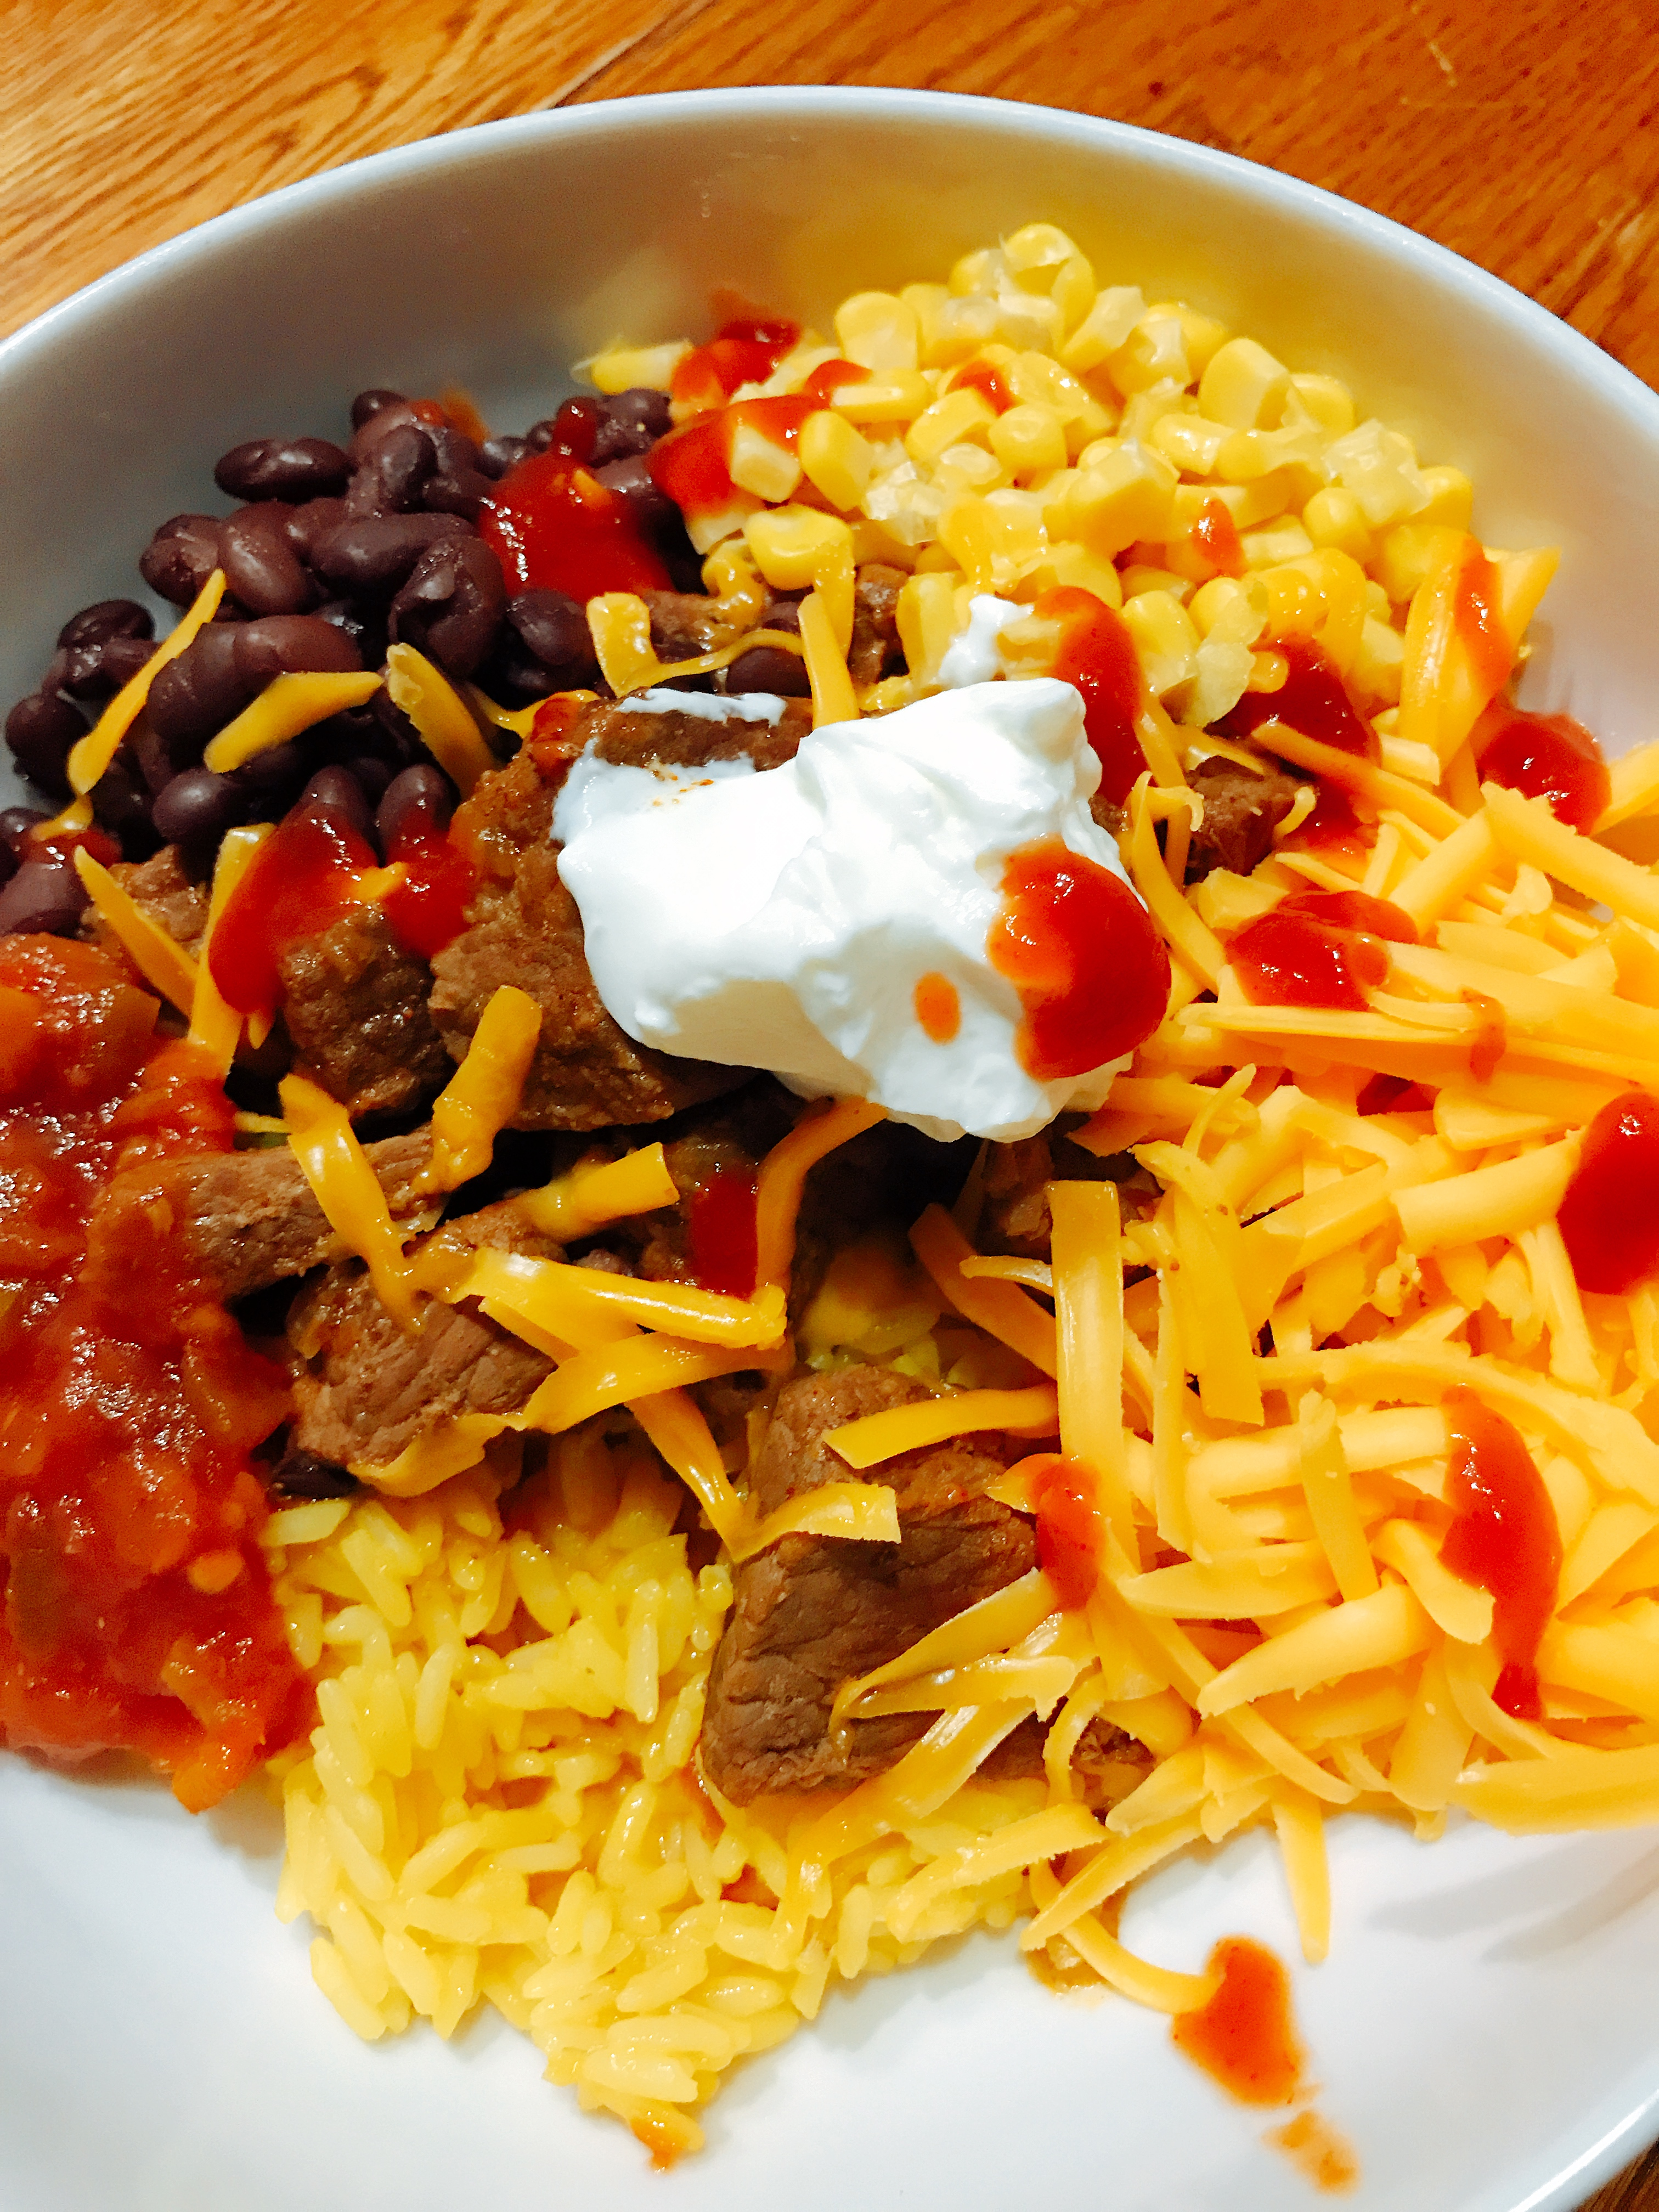 """""""Pressure cooking beef stew meat with taco seasoning allows for tender chunks of beef which can be used for taco bowls,"""" says thedailygourmet. """"It makes enough for a week of prepped lunches. Garnish with salsa, sour cream, avocado, and cilantro before serving."""""""